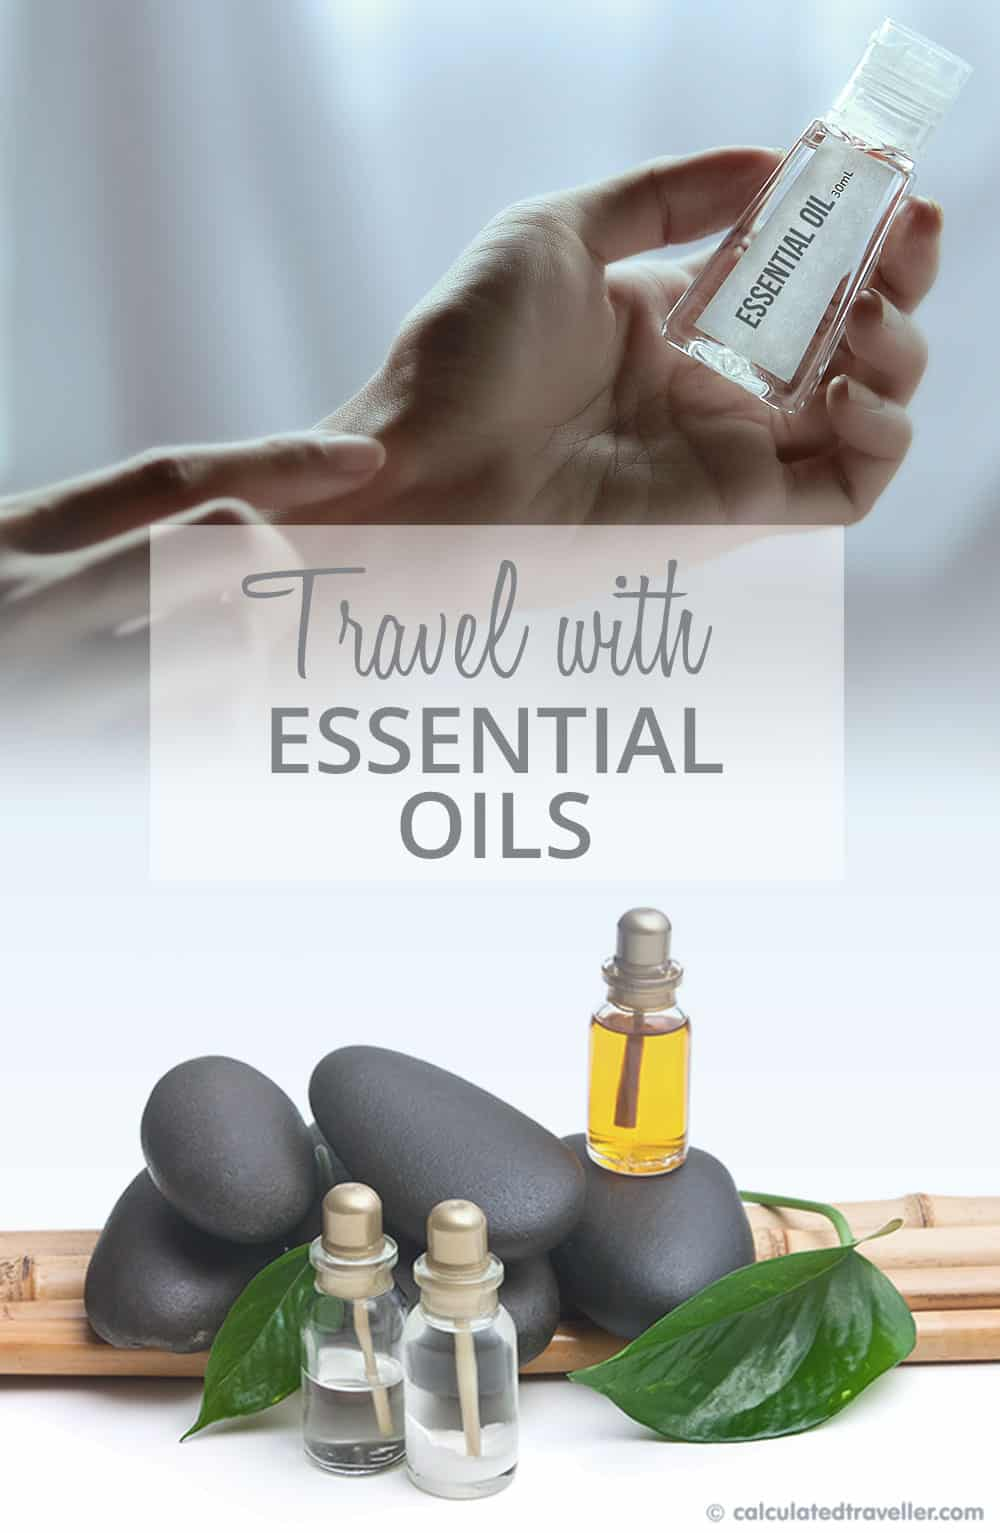 Do you practice aromatherapy at home? Here are tips for travelling with your favourite blend of essential oils to help you feel great wherever you travel. #travel #EssentialOils #Oils #EOs #packing #advice #HowTo